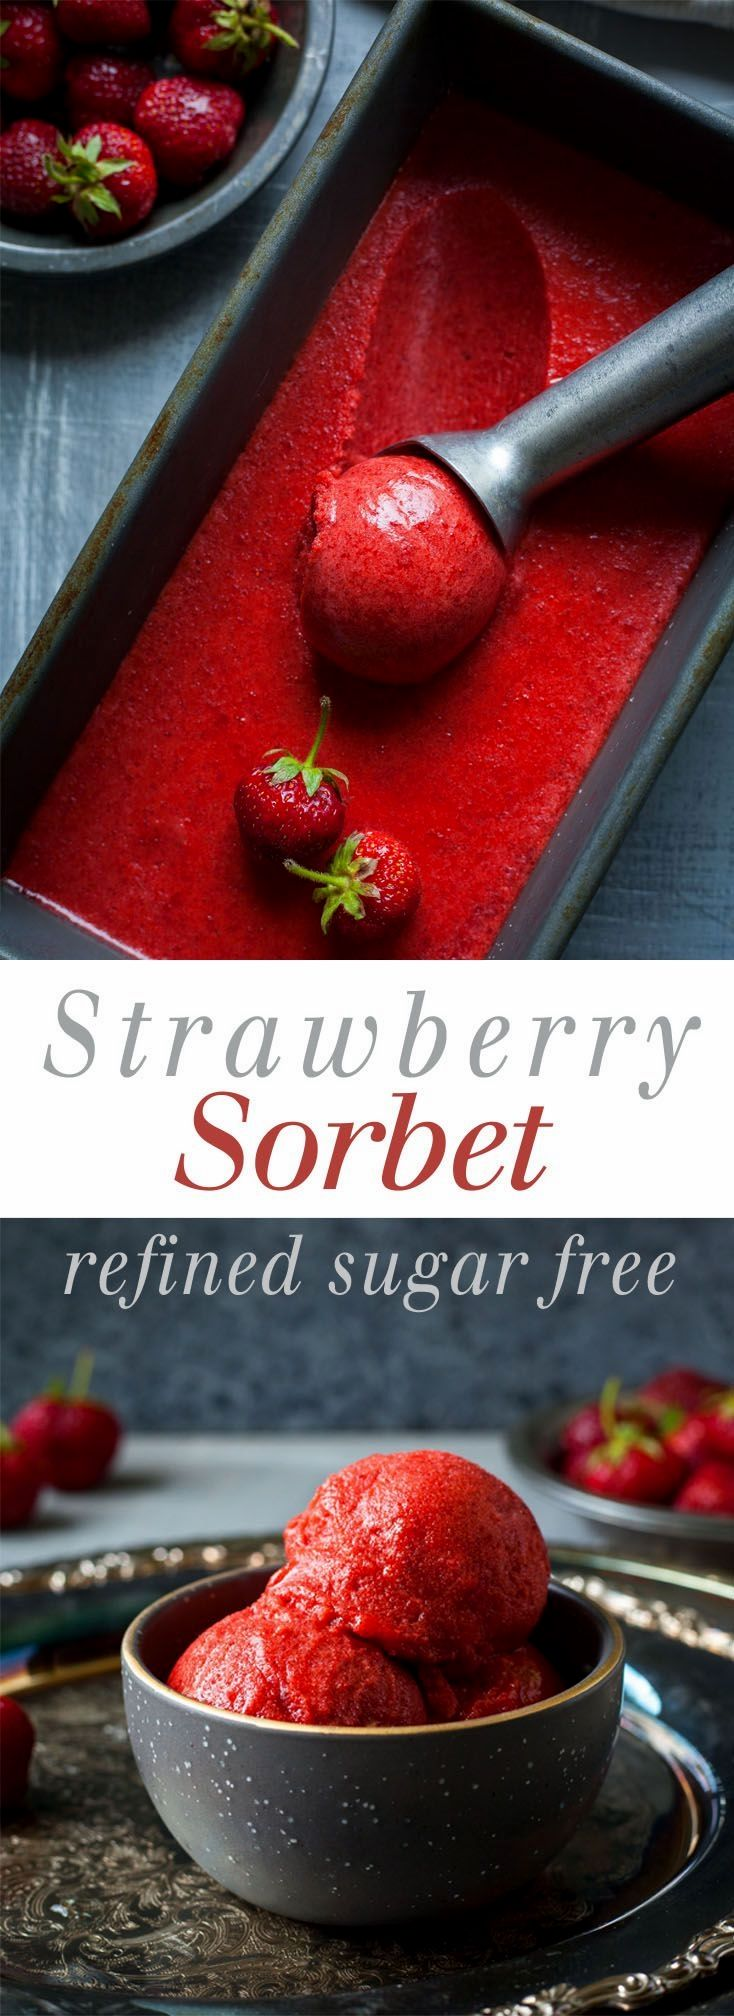 Strawberry Sorbet - Naturally sweetened, 3 ingredients, and so refreshing! This is the best healthy, vegan, frozen summer treat.